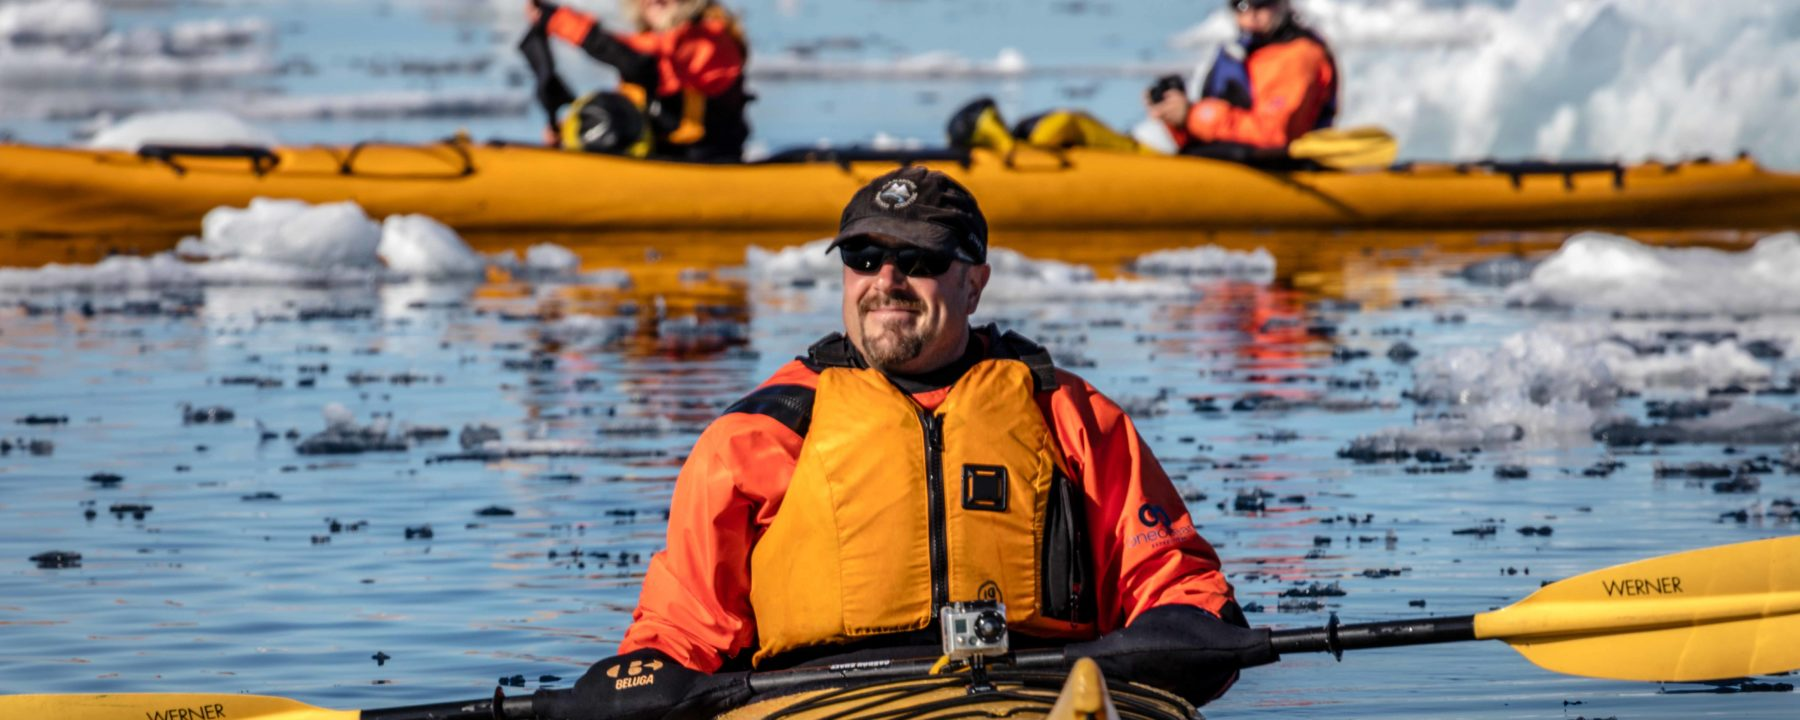 Sea Kayaking tour with One Ocean Expeditions in the Canadian Arctic